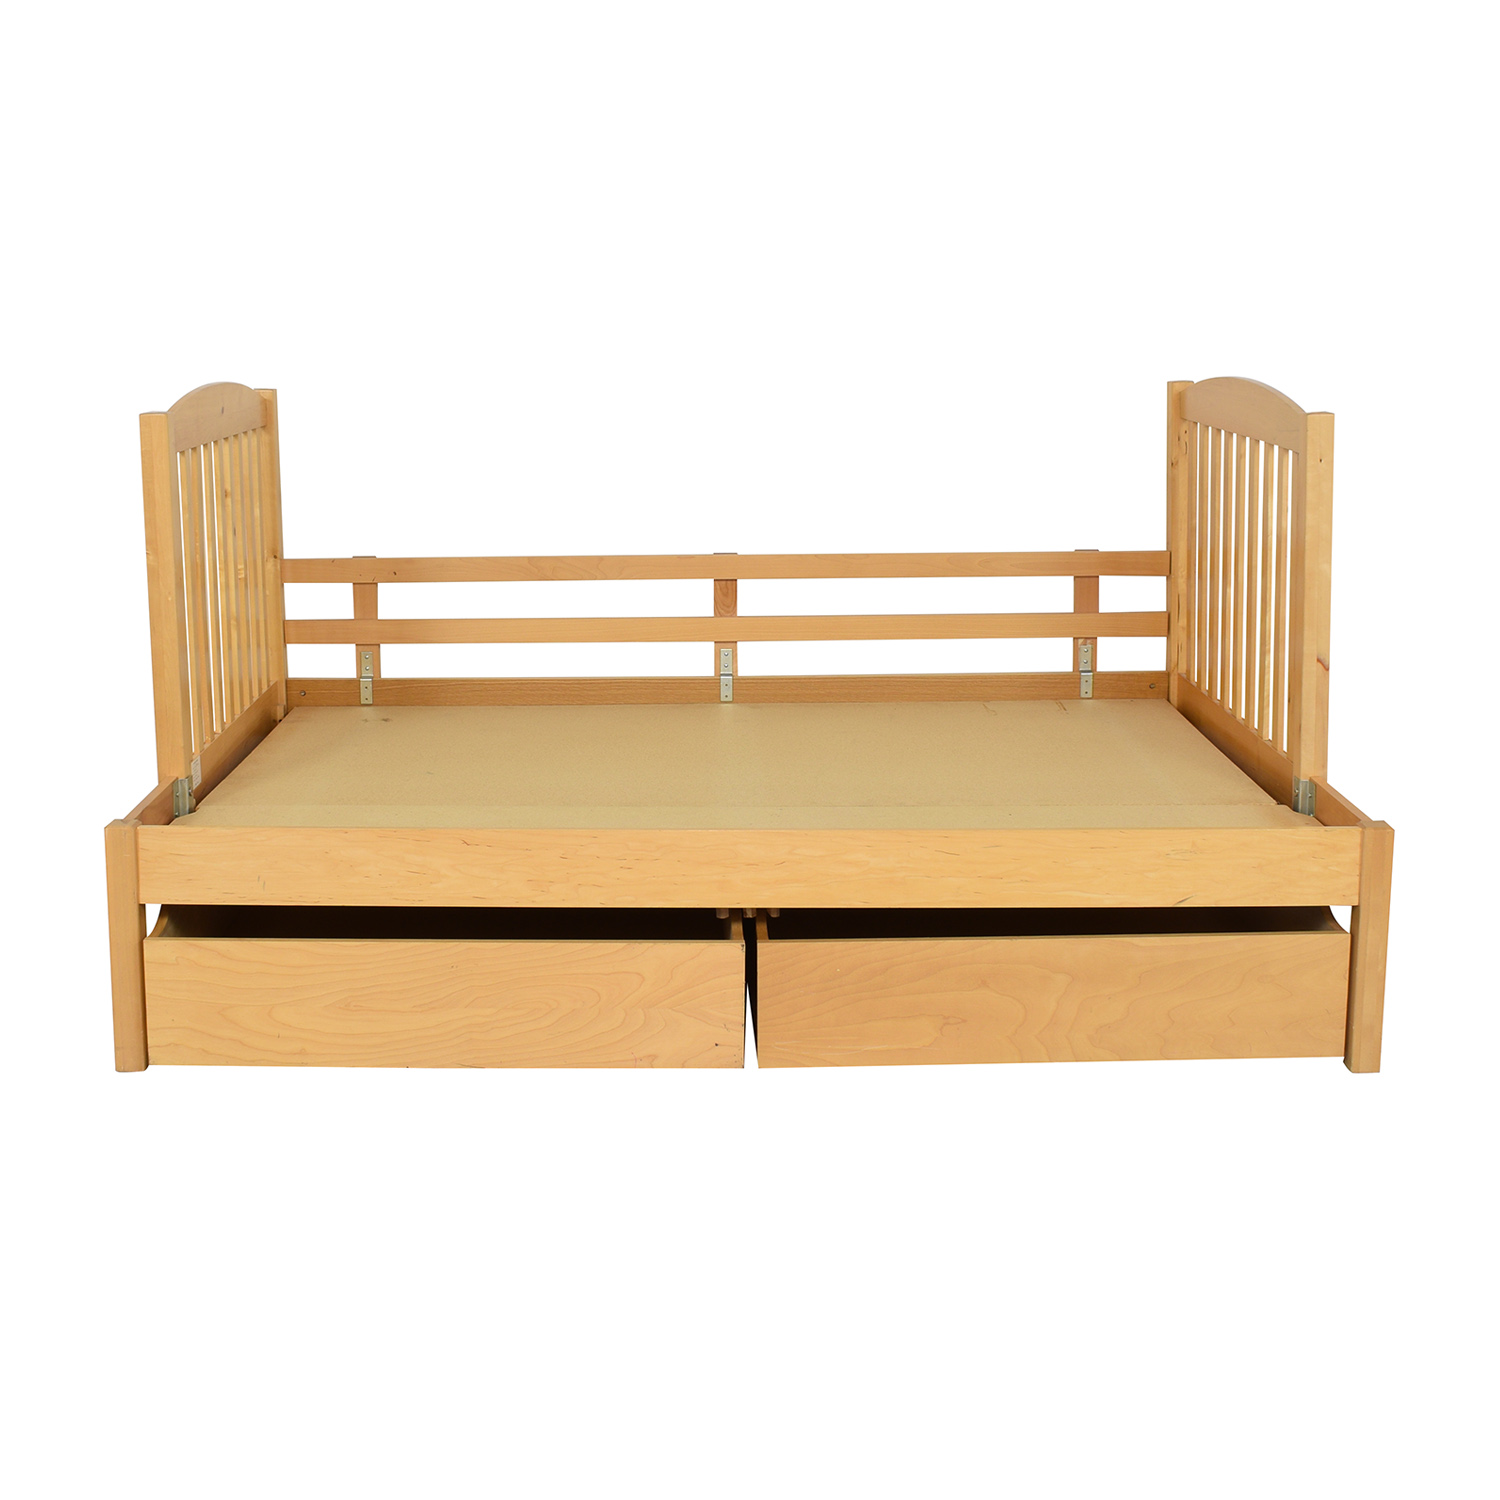 AP Industries AP Industries Modular Bed with Storage for sale